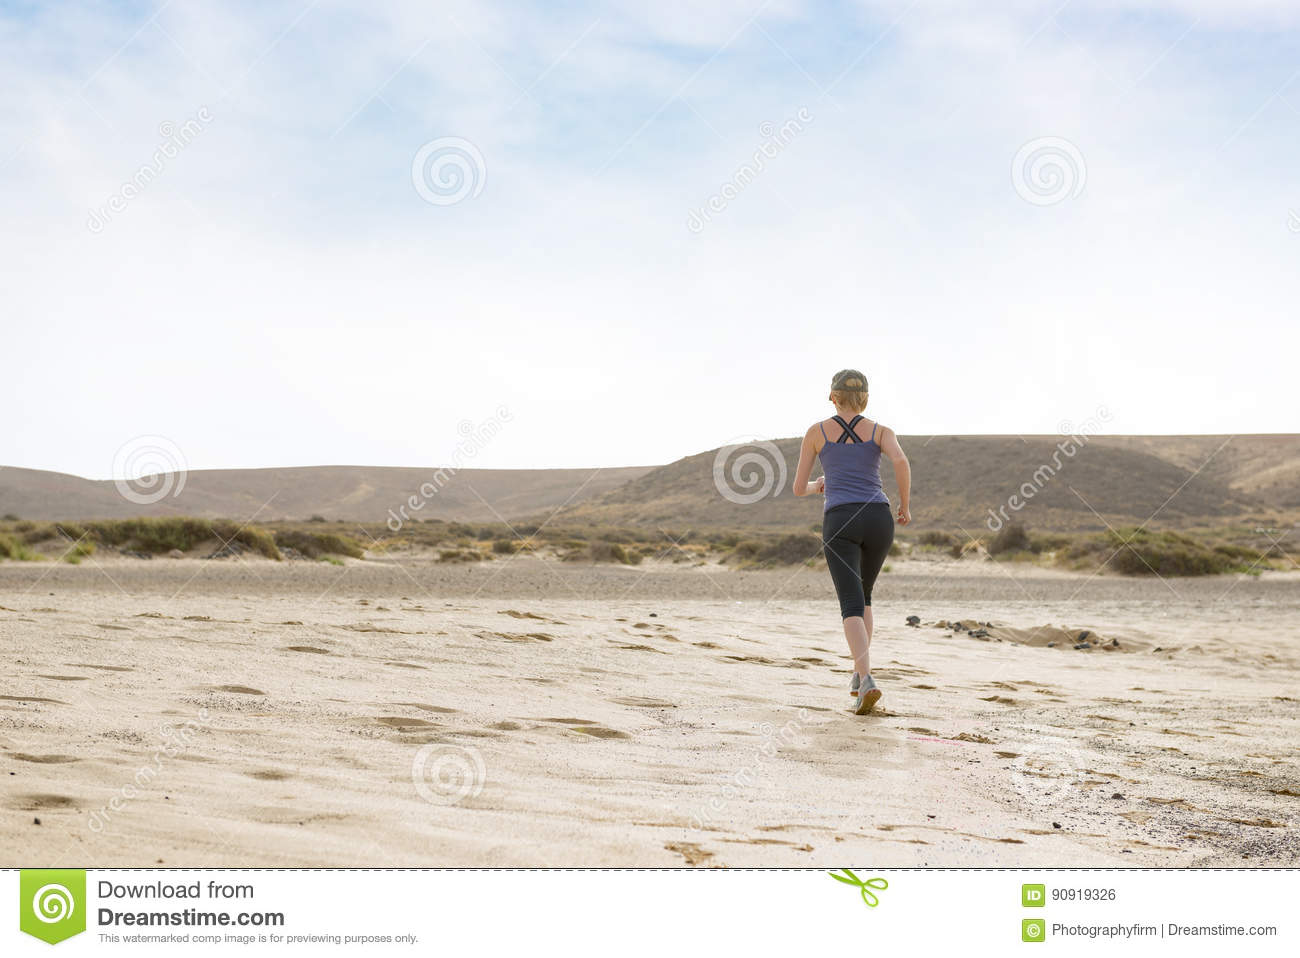 Woman Doing Morning Fitness Run in the Desert